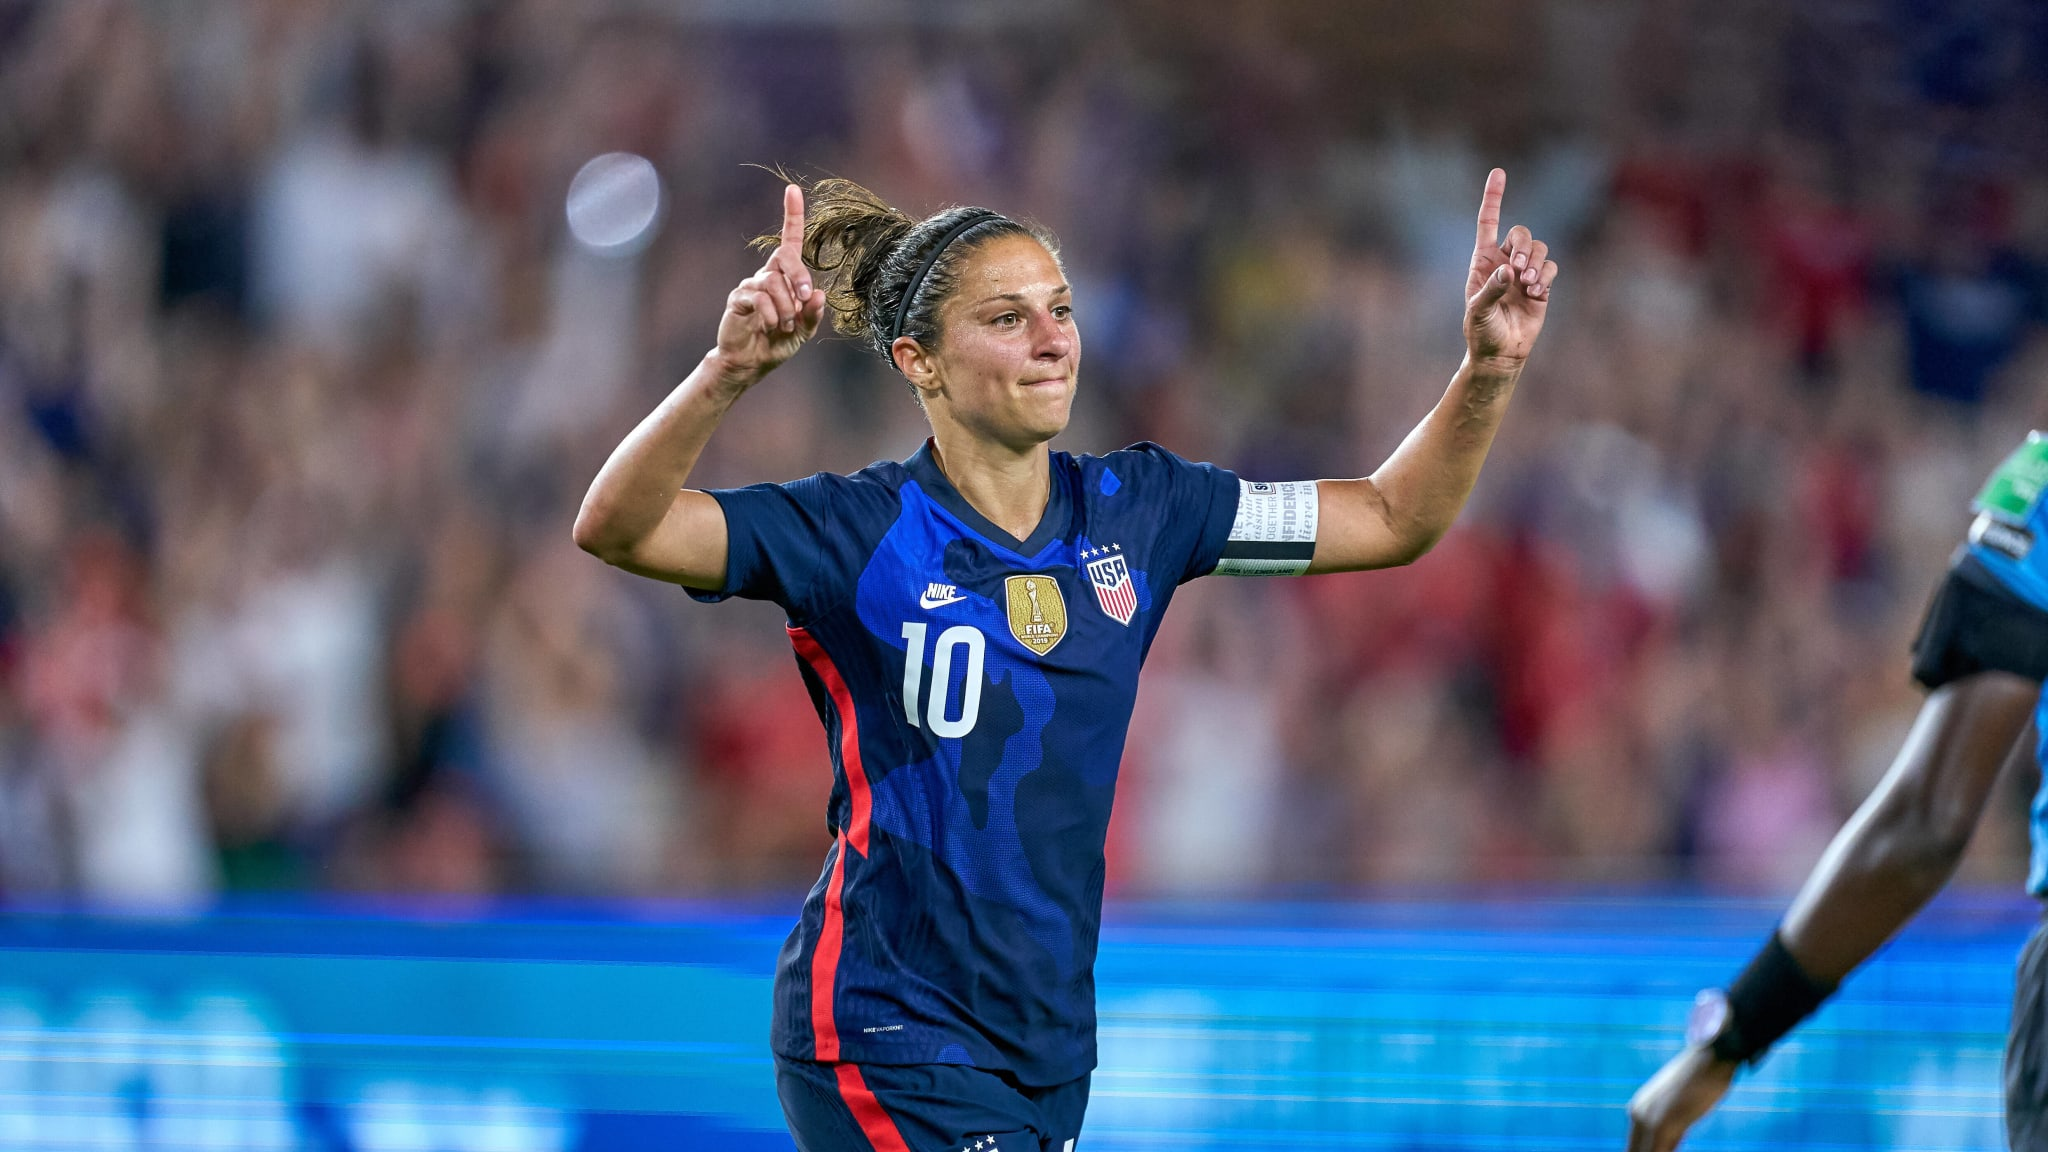 Carli Lloyd celebrates scoring for USA at the 2020 SheBelieves Cup.